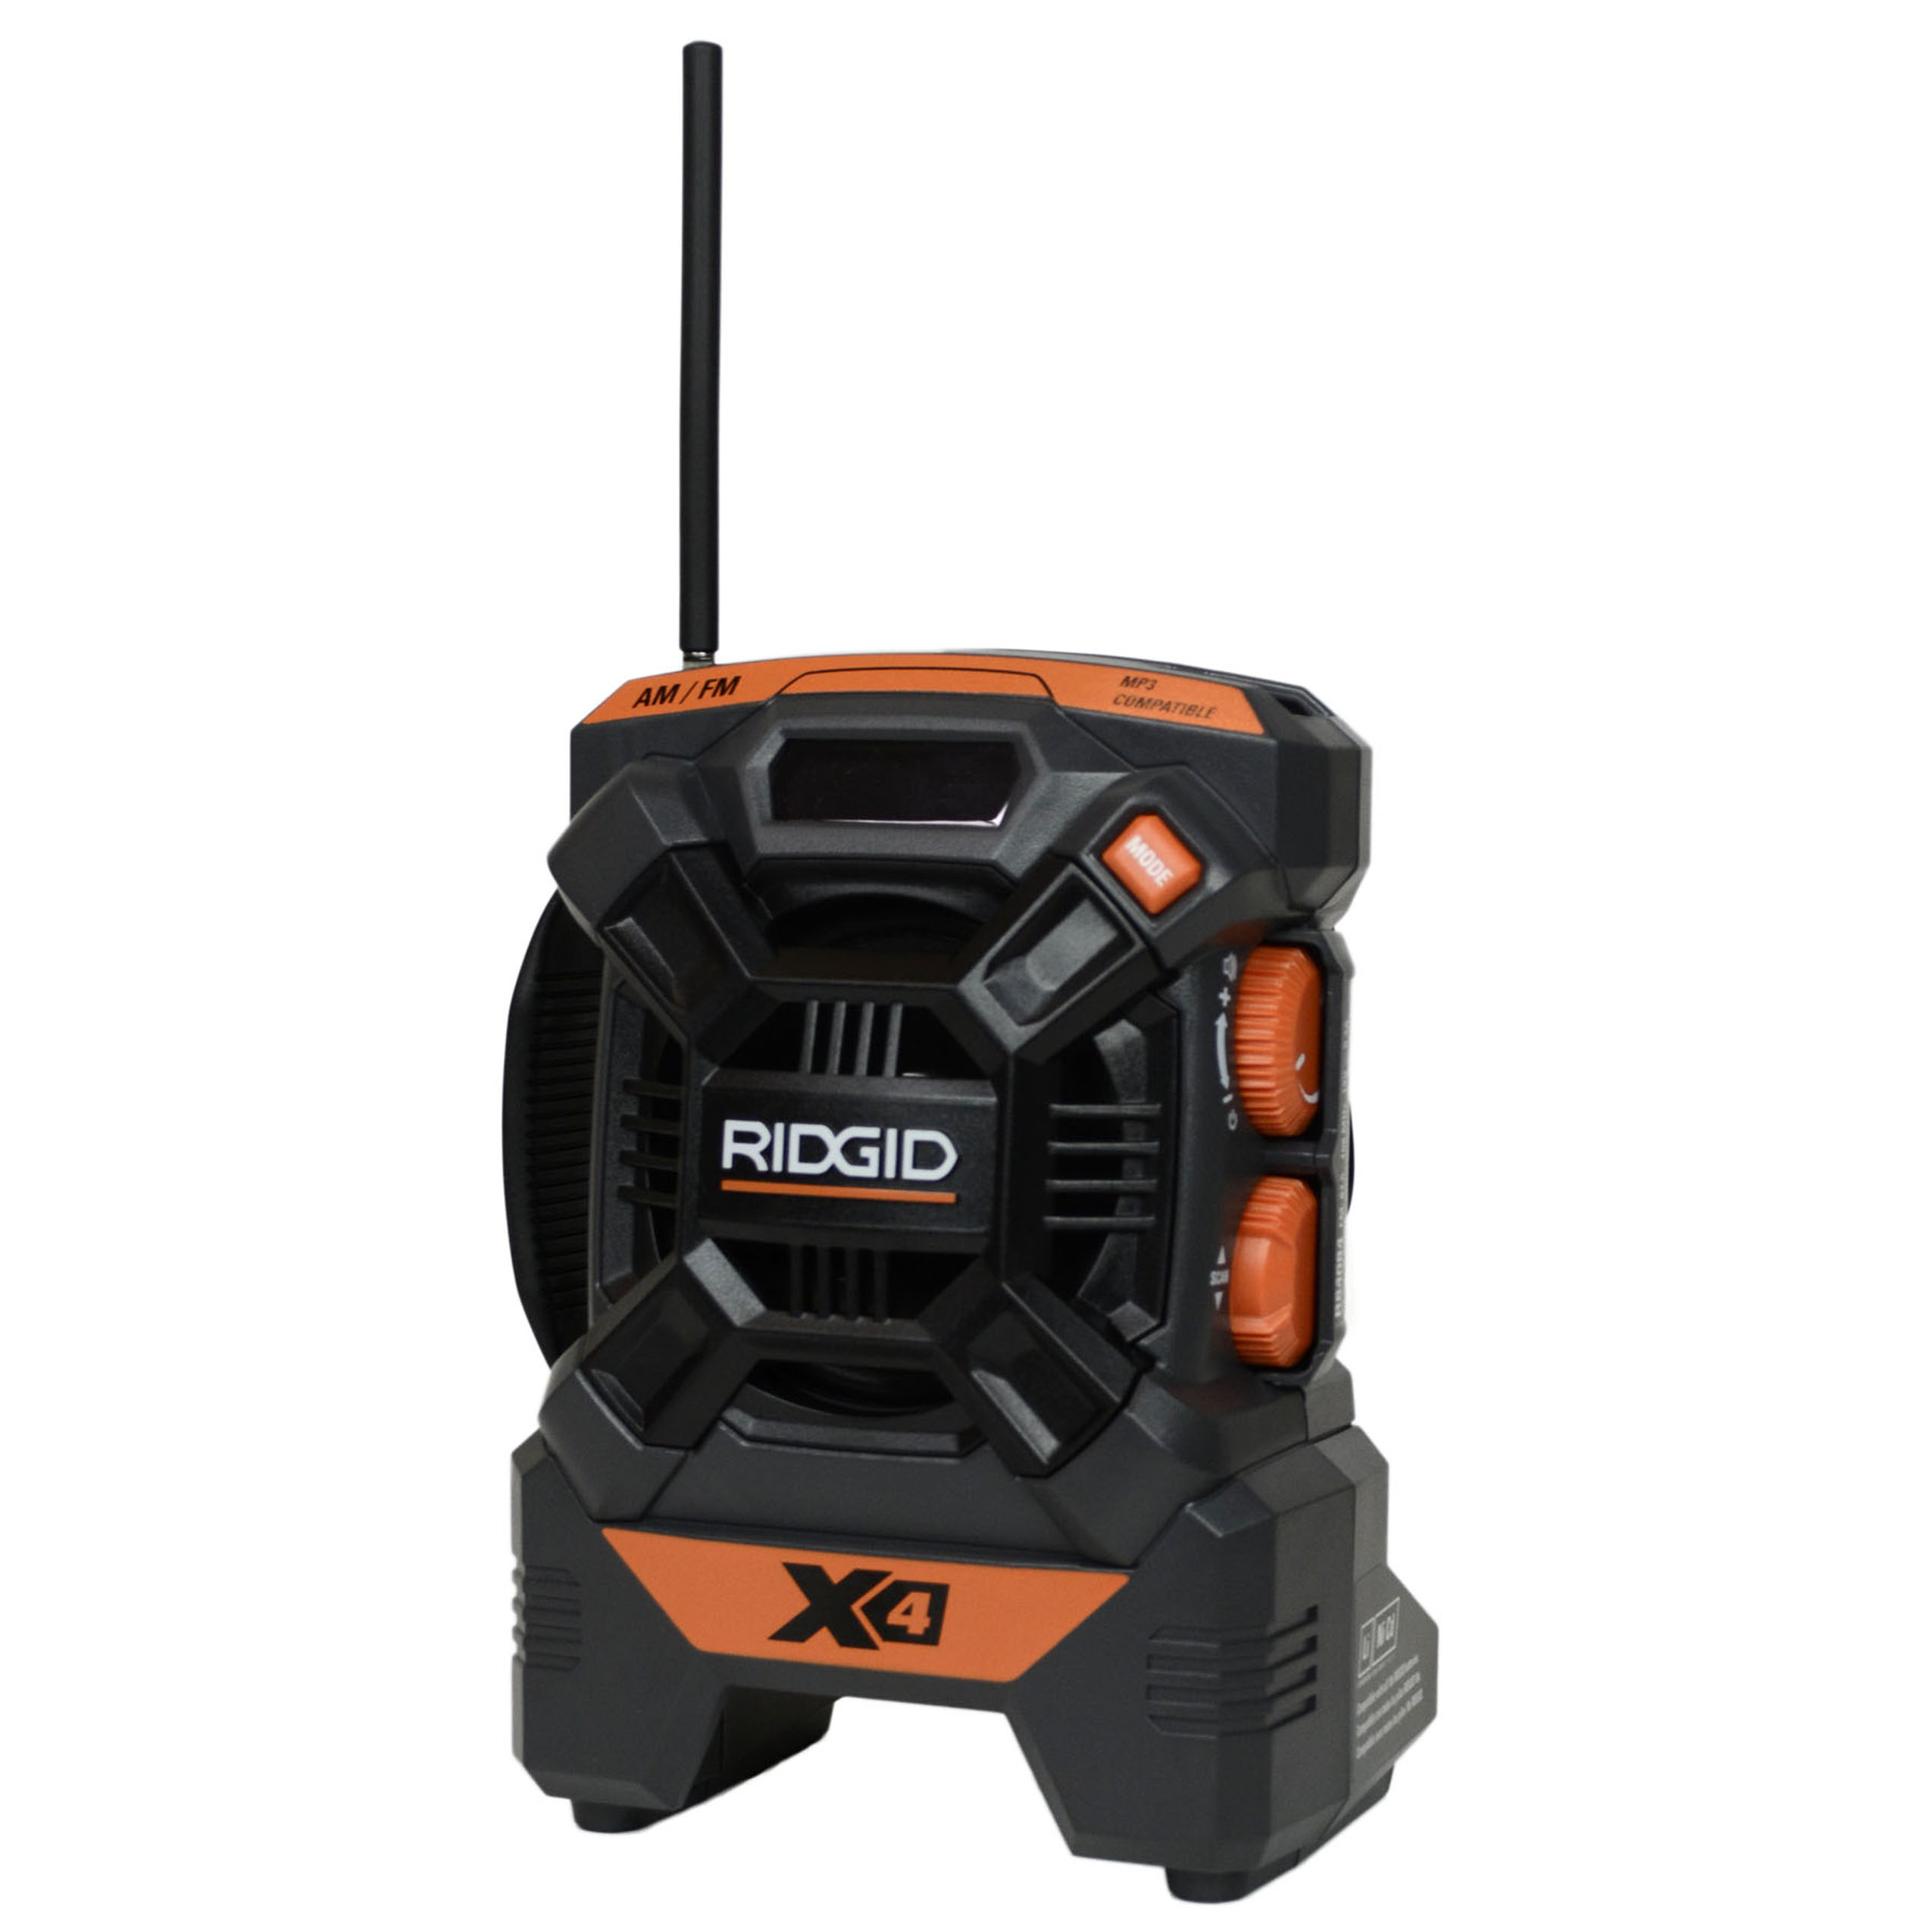 Ridgid R84084 X4 18V AM-FM IPod MP3 Job Site Cordless Min...